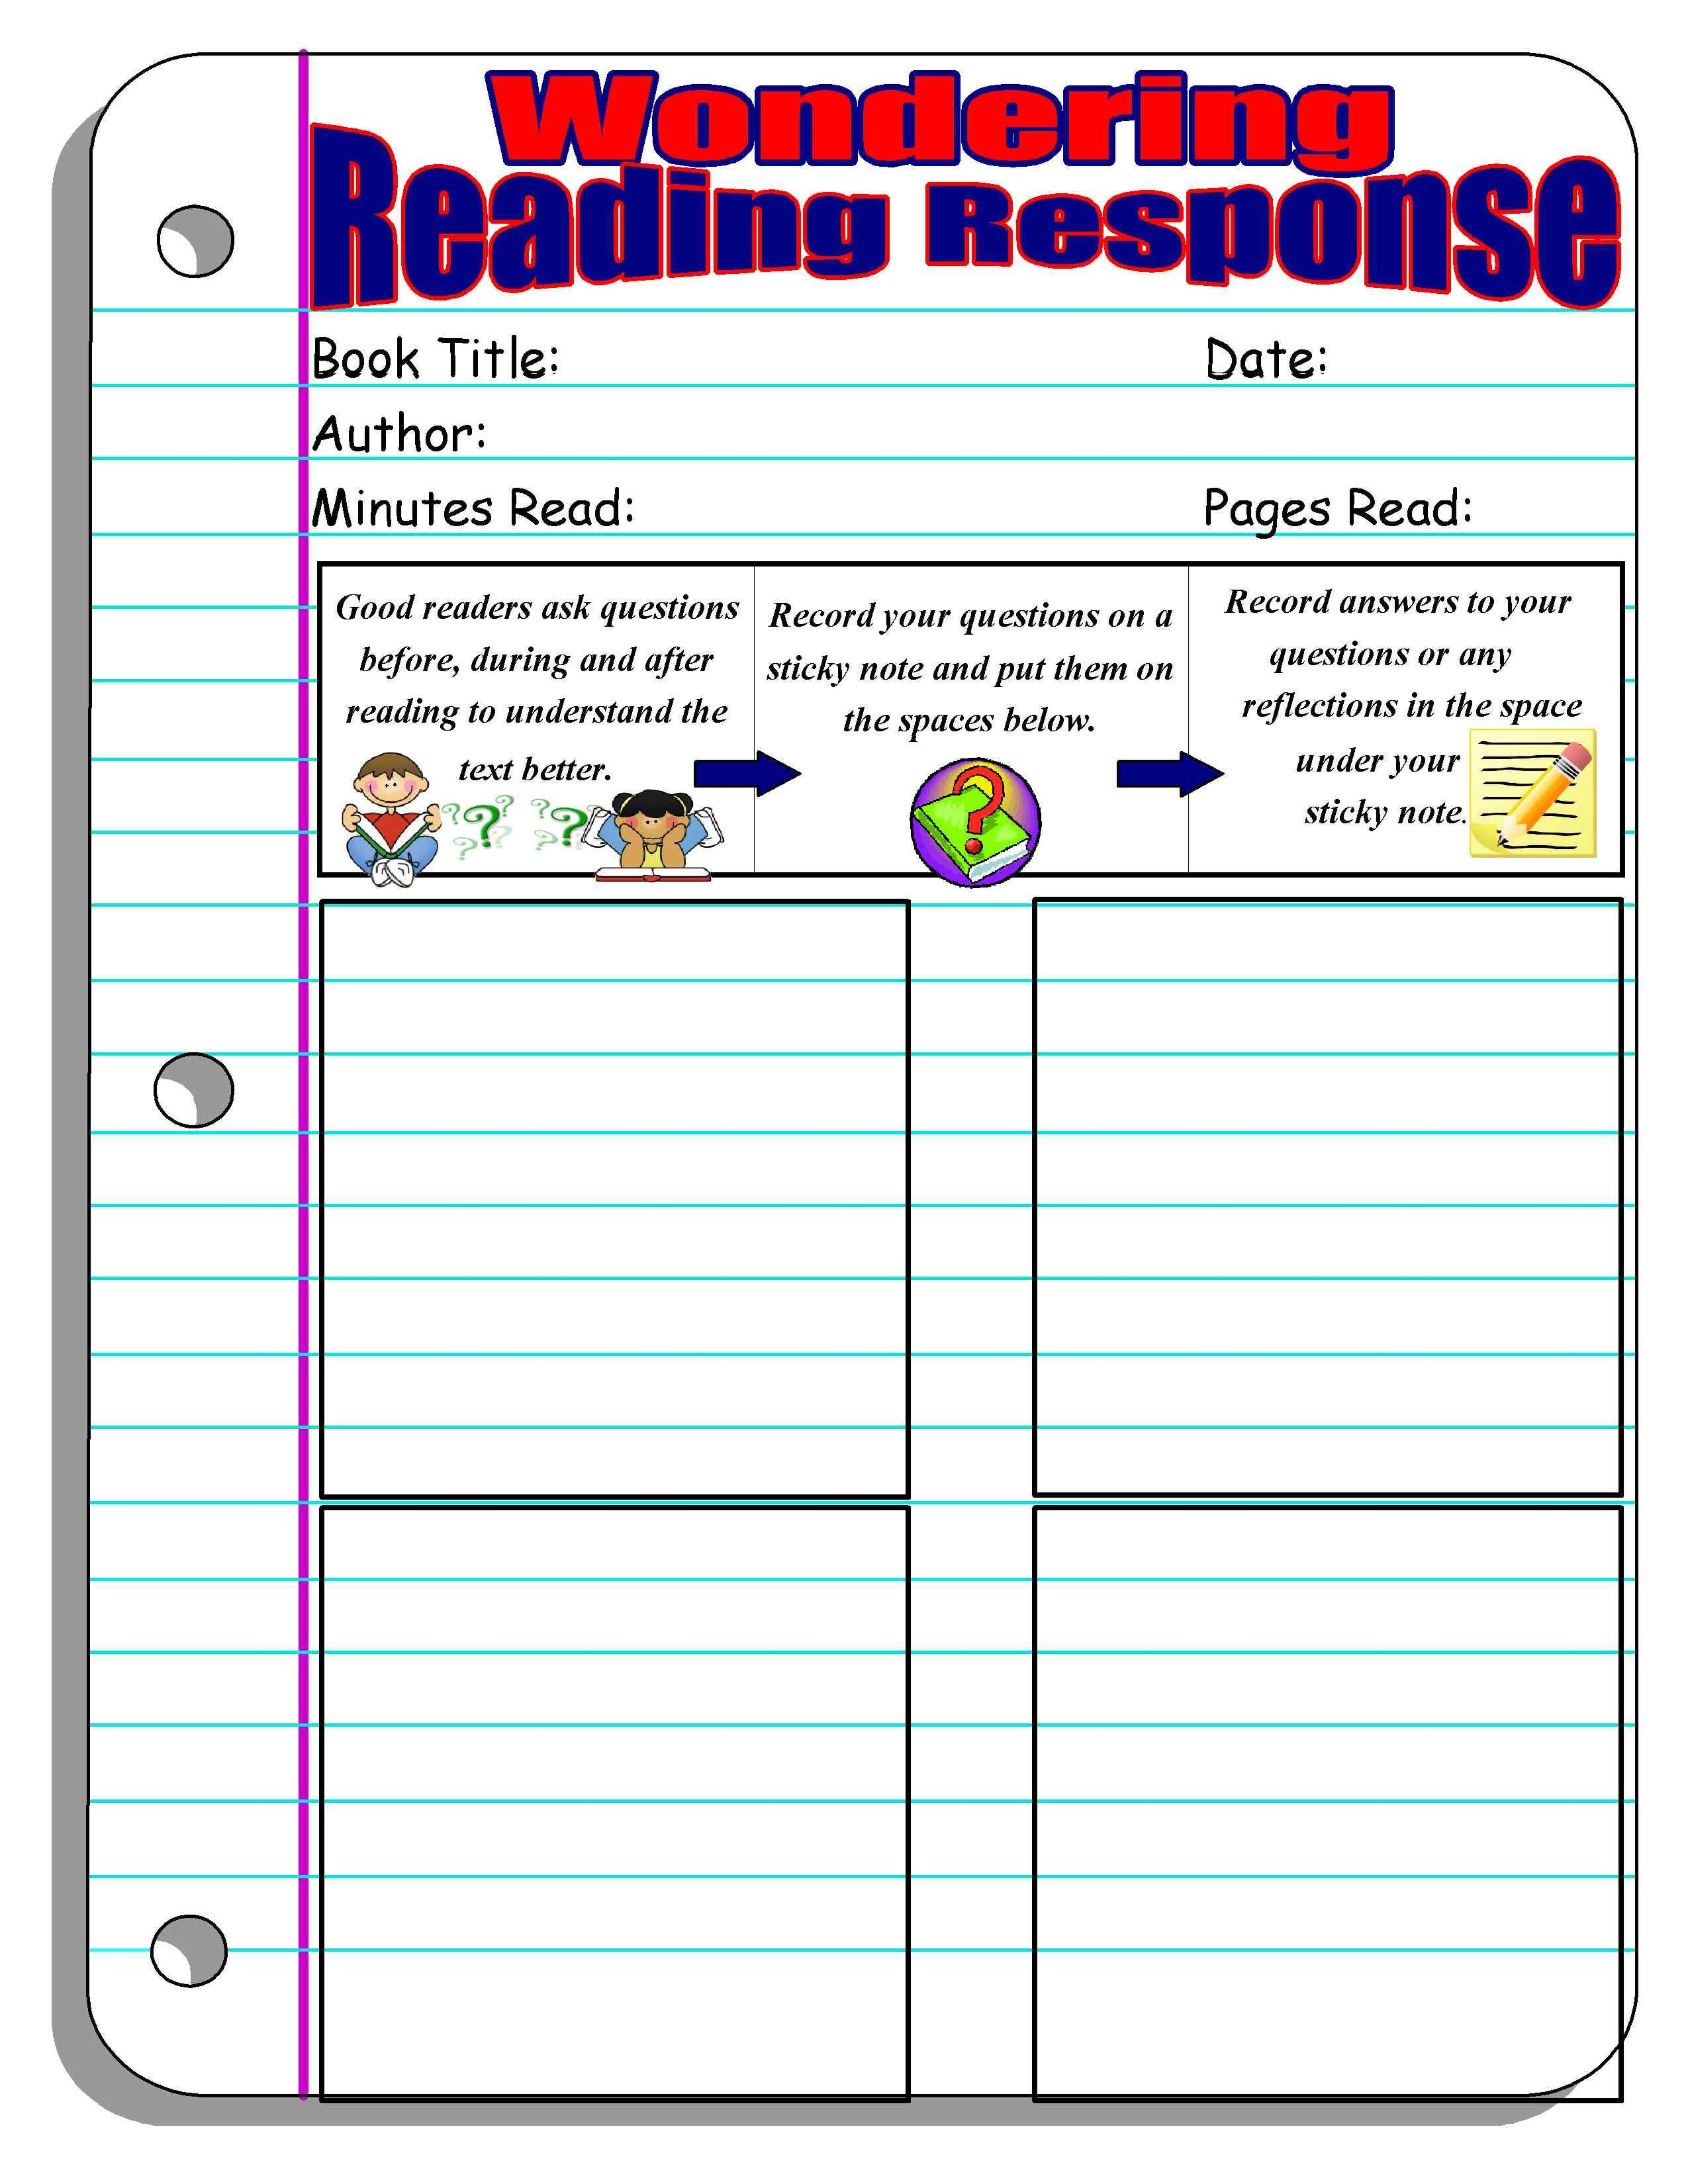 11 Free Reading Response Forms And Graphic Organizers For Independent Reading